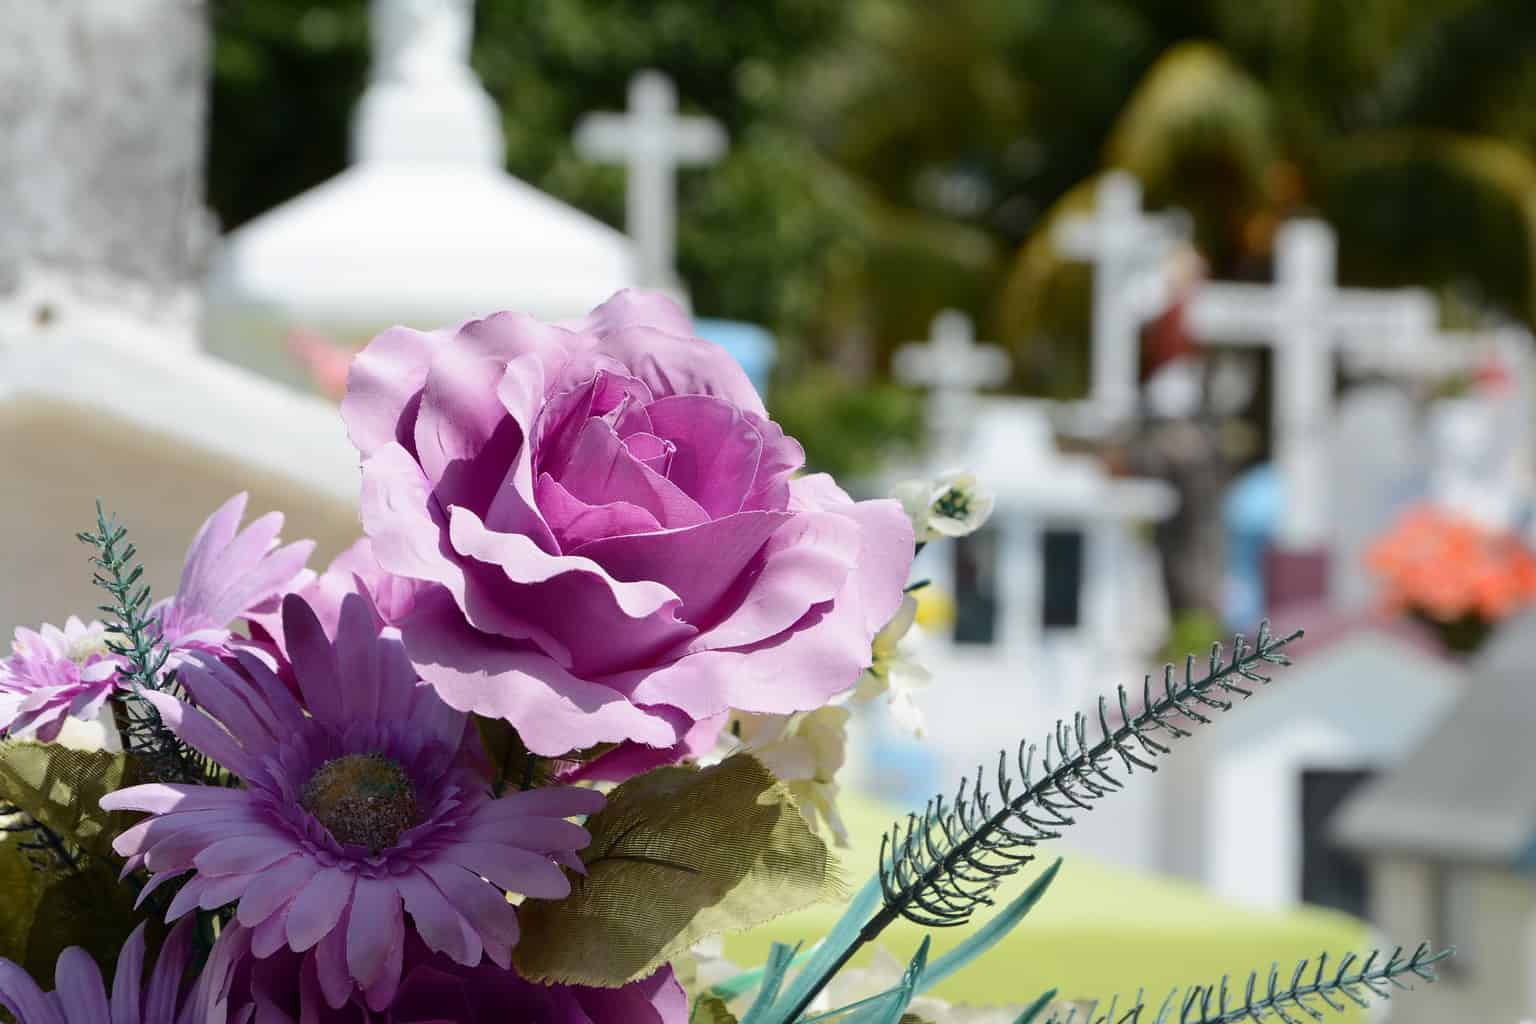 The Challenge Of Organising A Diy Funeral My Experience